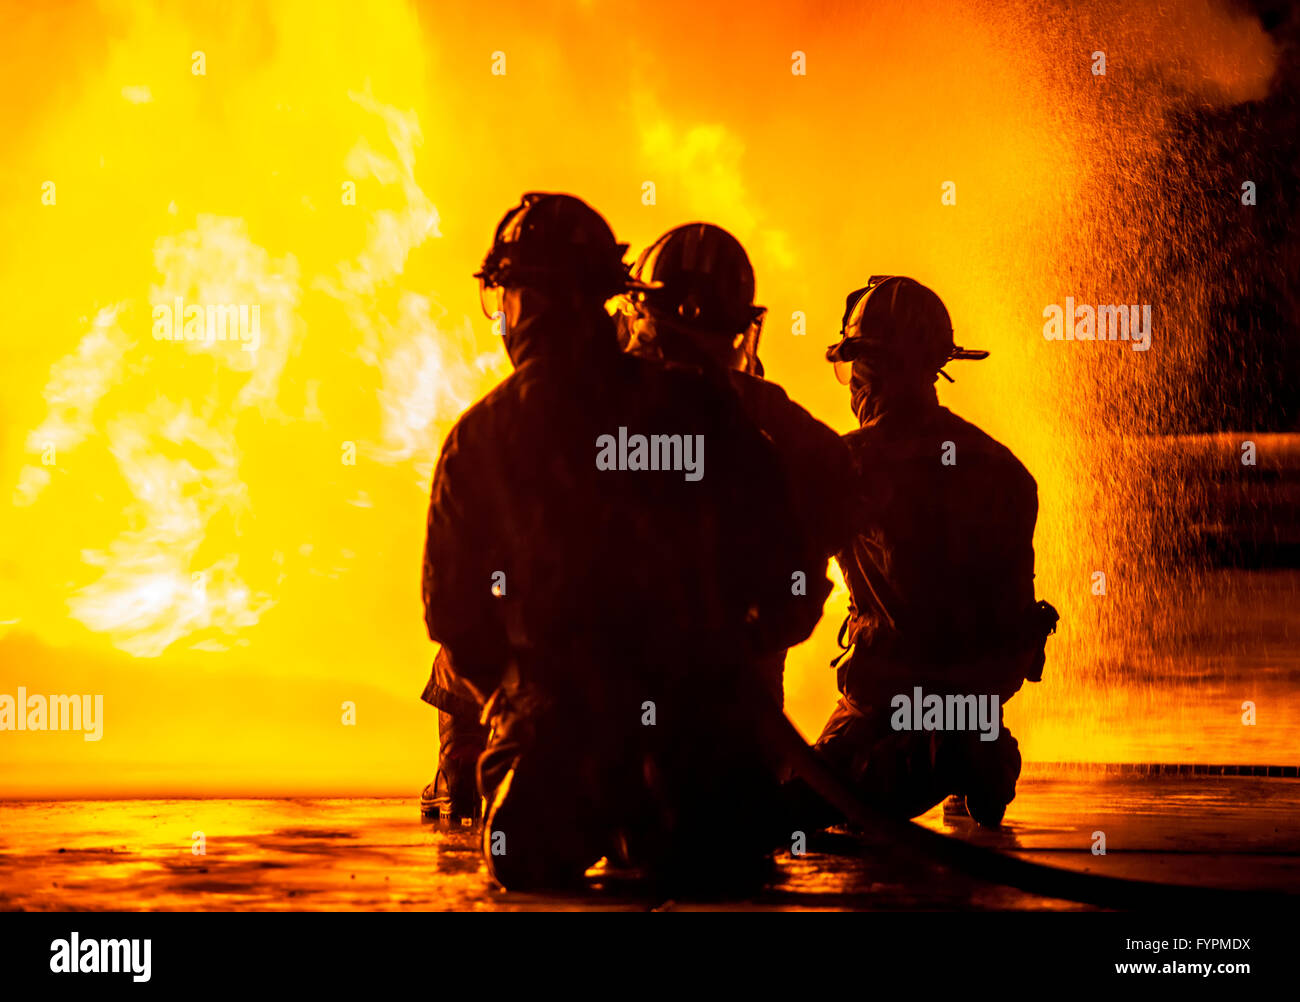 Three firefighters kneeling in front of fire Stock Photo